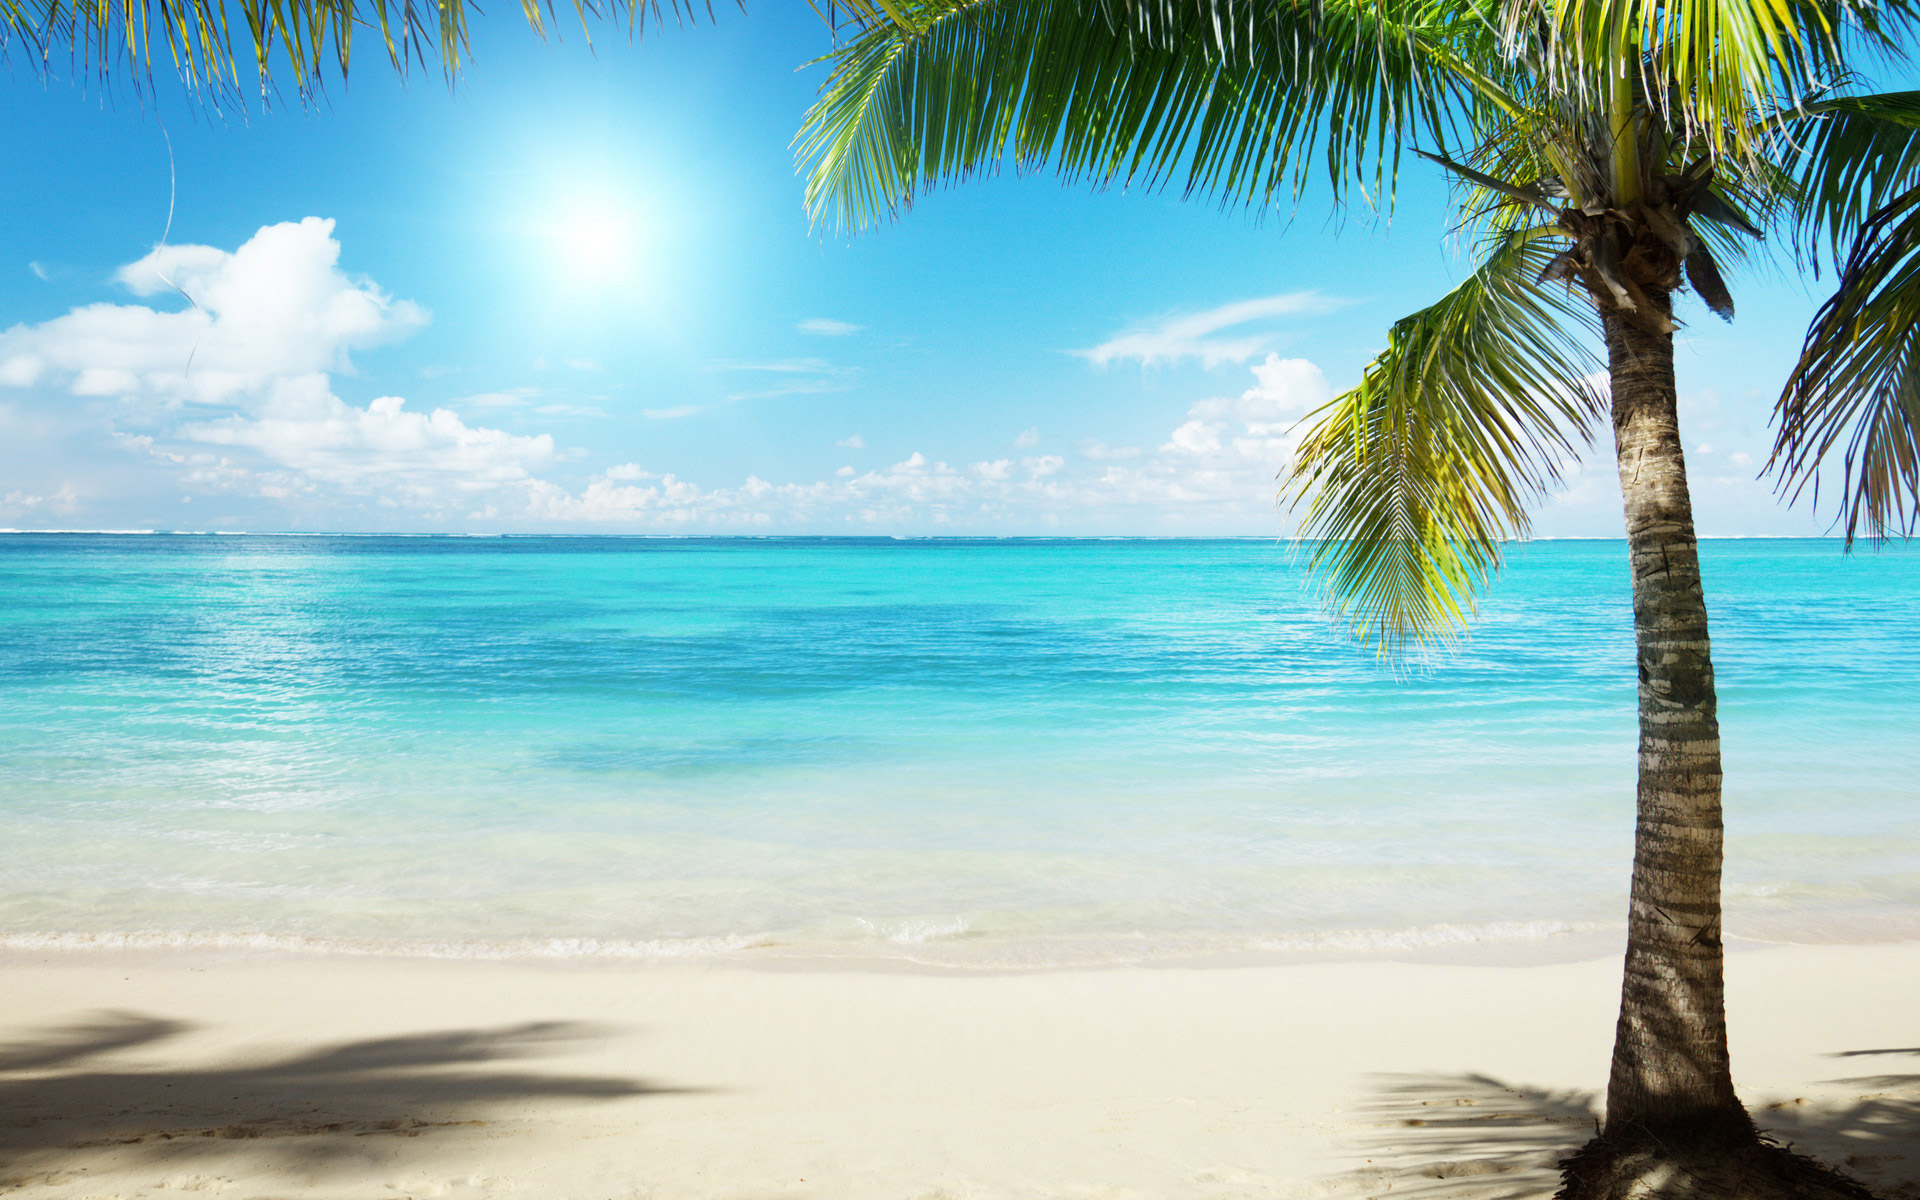 Beautiful Beach HD Wallpaper 2015 for Desktop beautiful beach 1920x1200